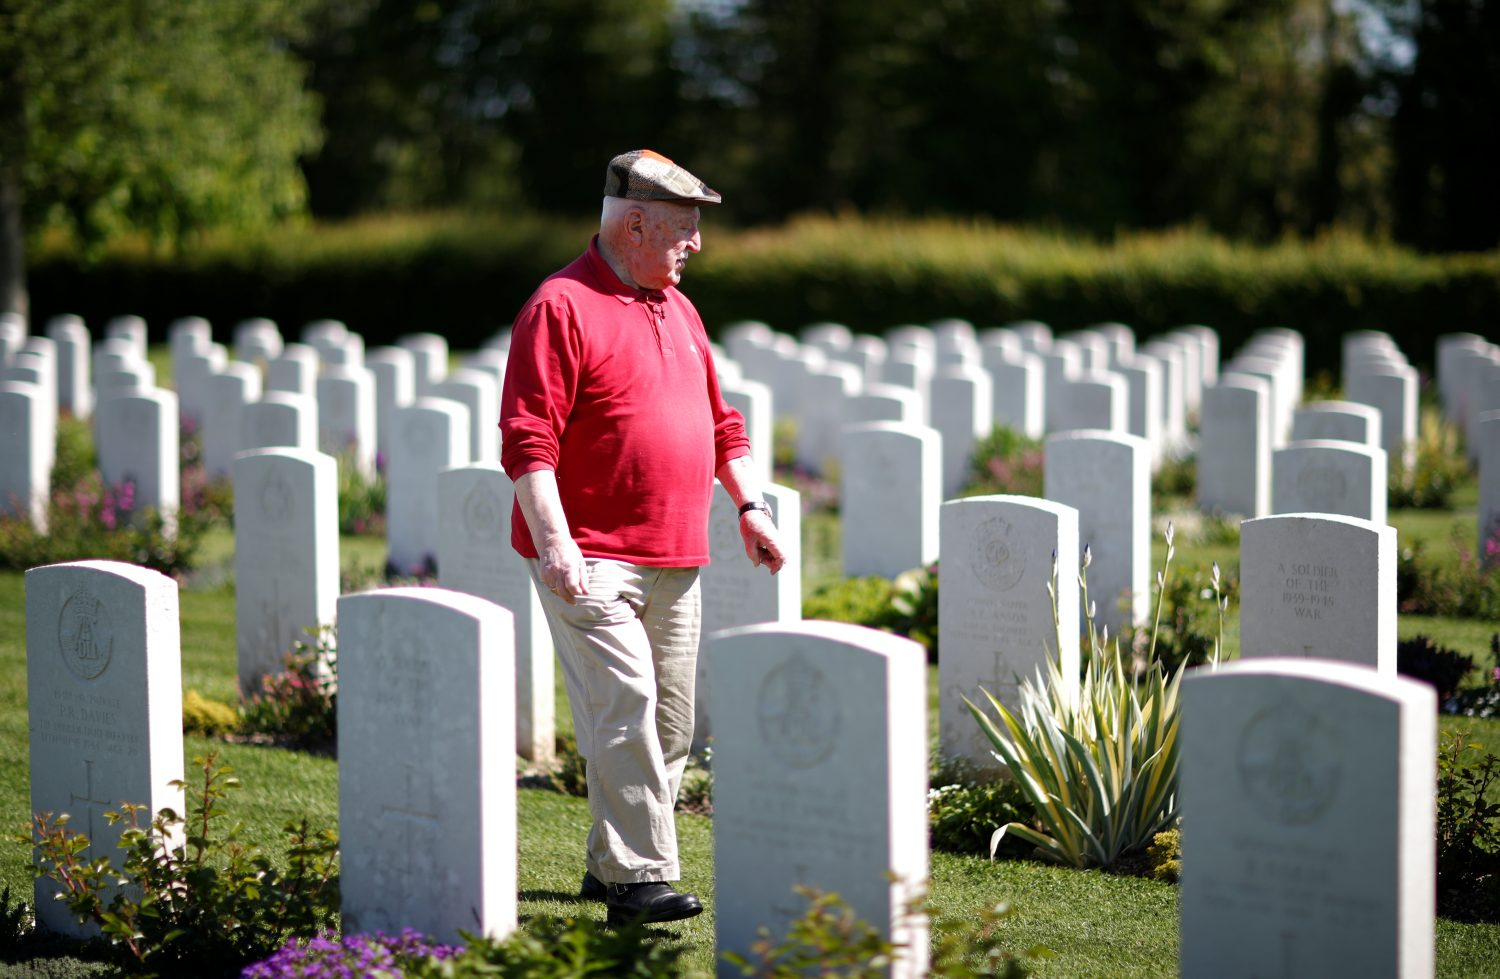 Yves Faucon, 86, from Tilly-sur-Seulle in the Normandie region visits his town's military cemetery as he attends an interview with Reuters in Tilly-sur-Seulle, France, May 14, 2019. REUTERS/Christian Hartmann